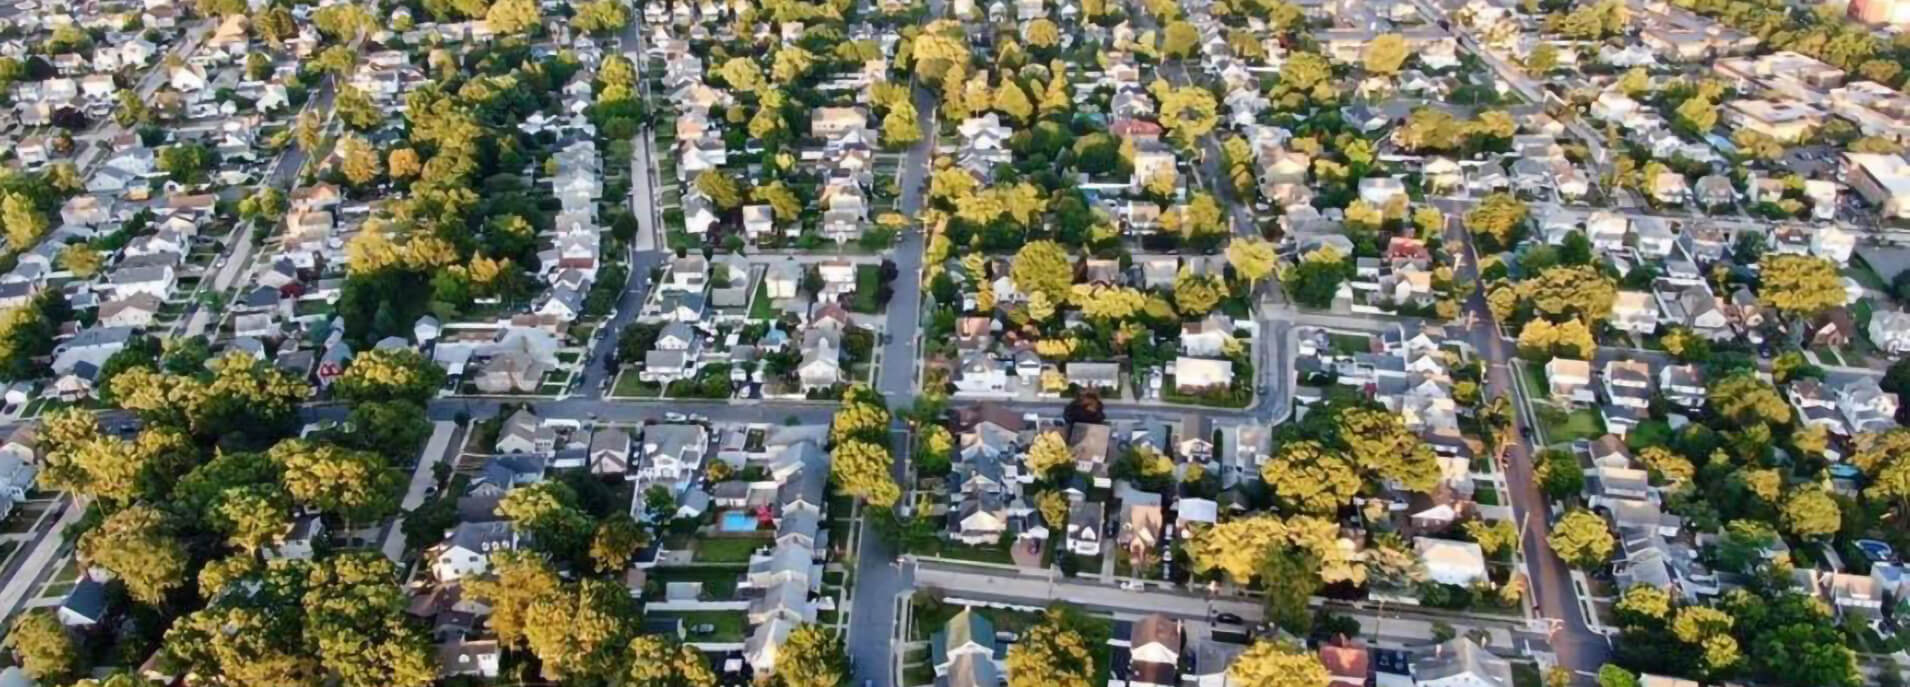 Lynbrook Village Aerial View